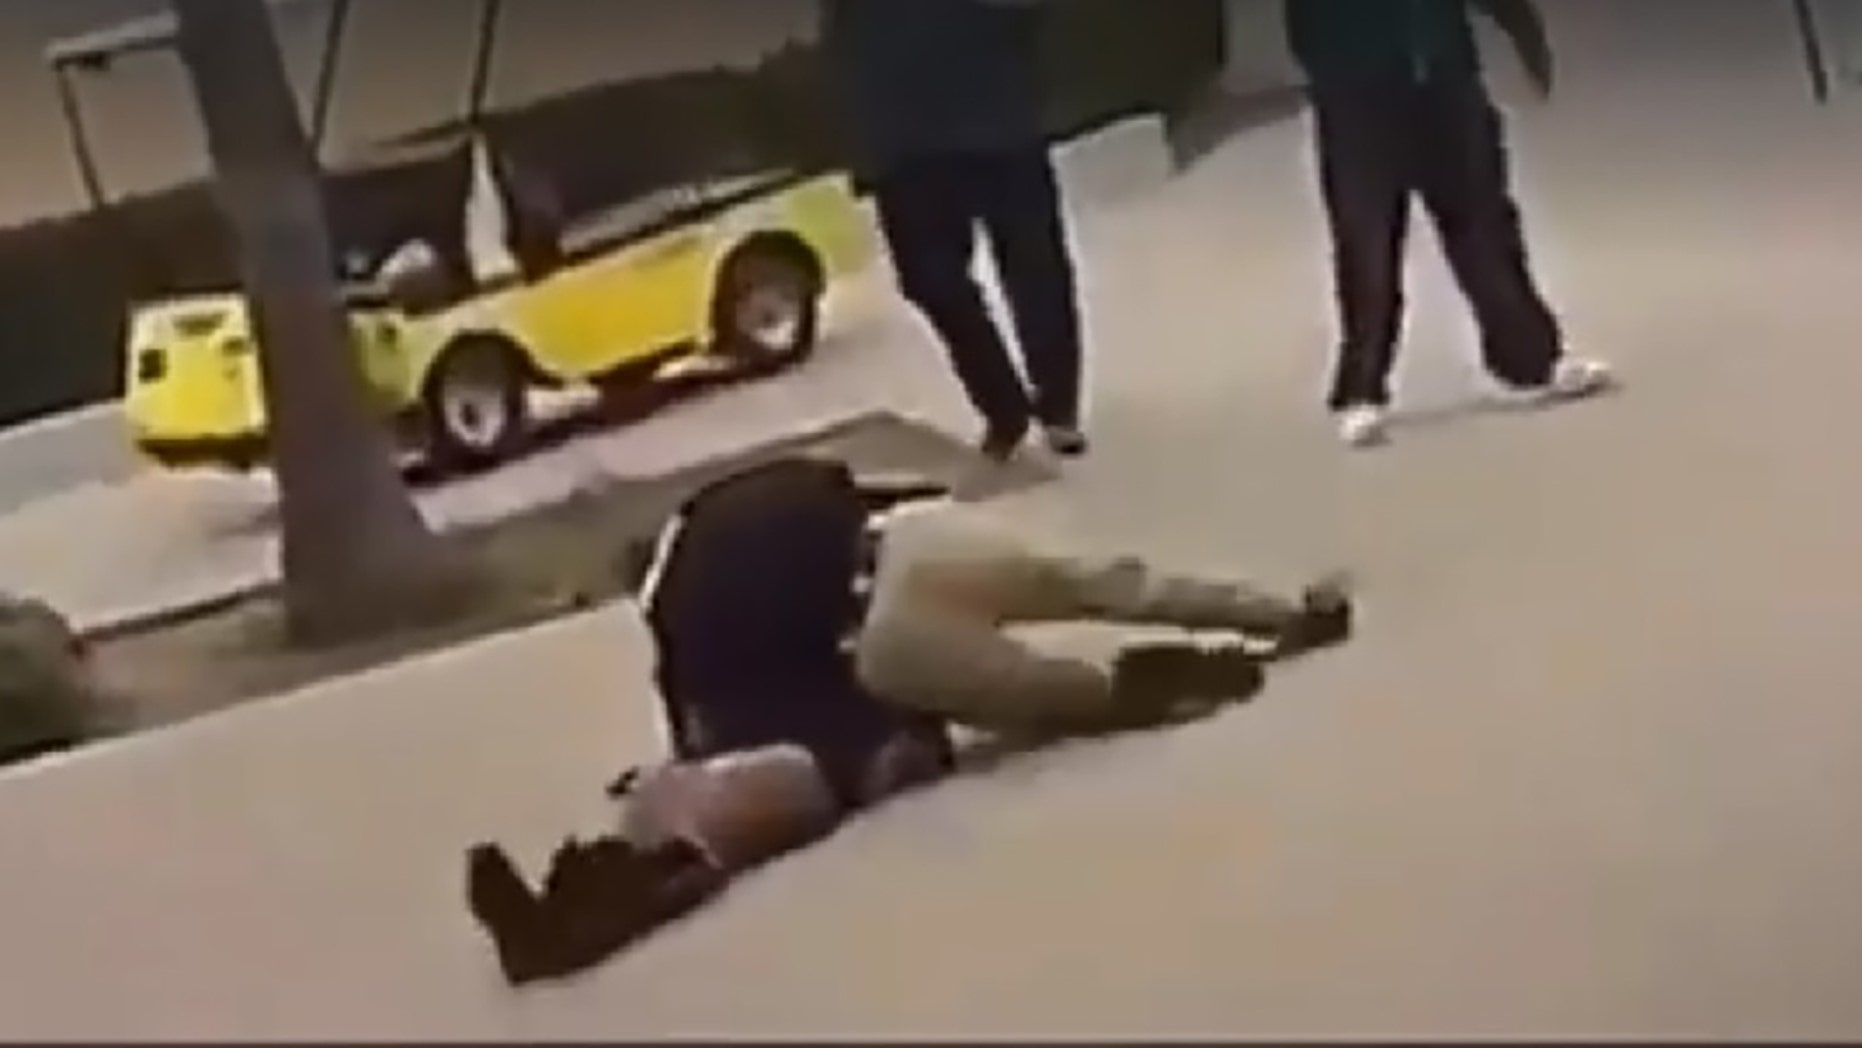 The La Mesa Police Department is conducting a review after a video surfaced appearing to show an on-campus officer slamming a California high school student to the ground.